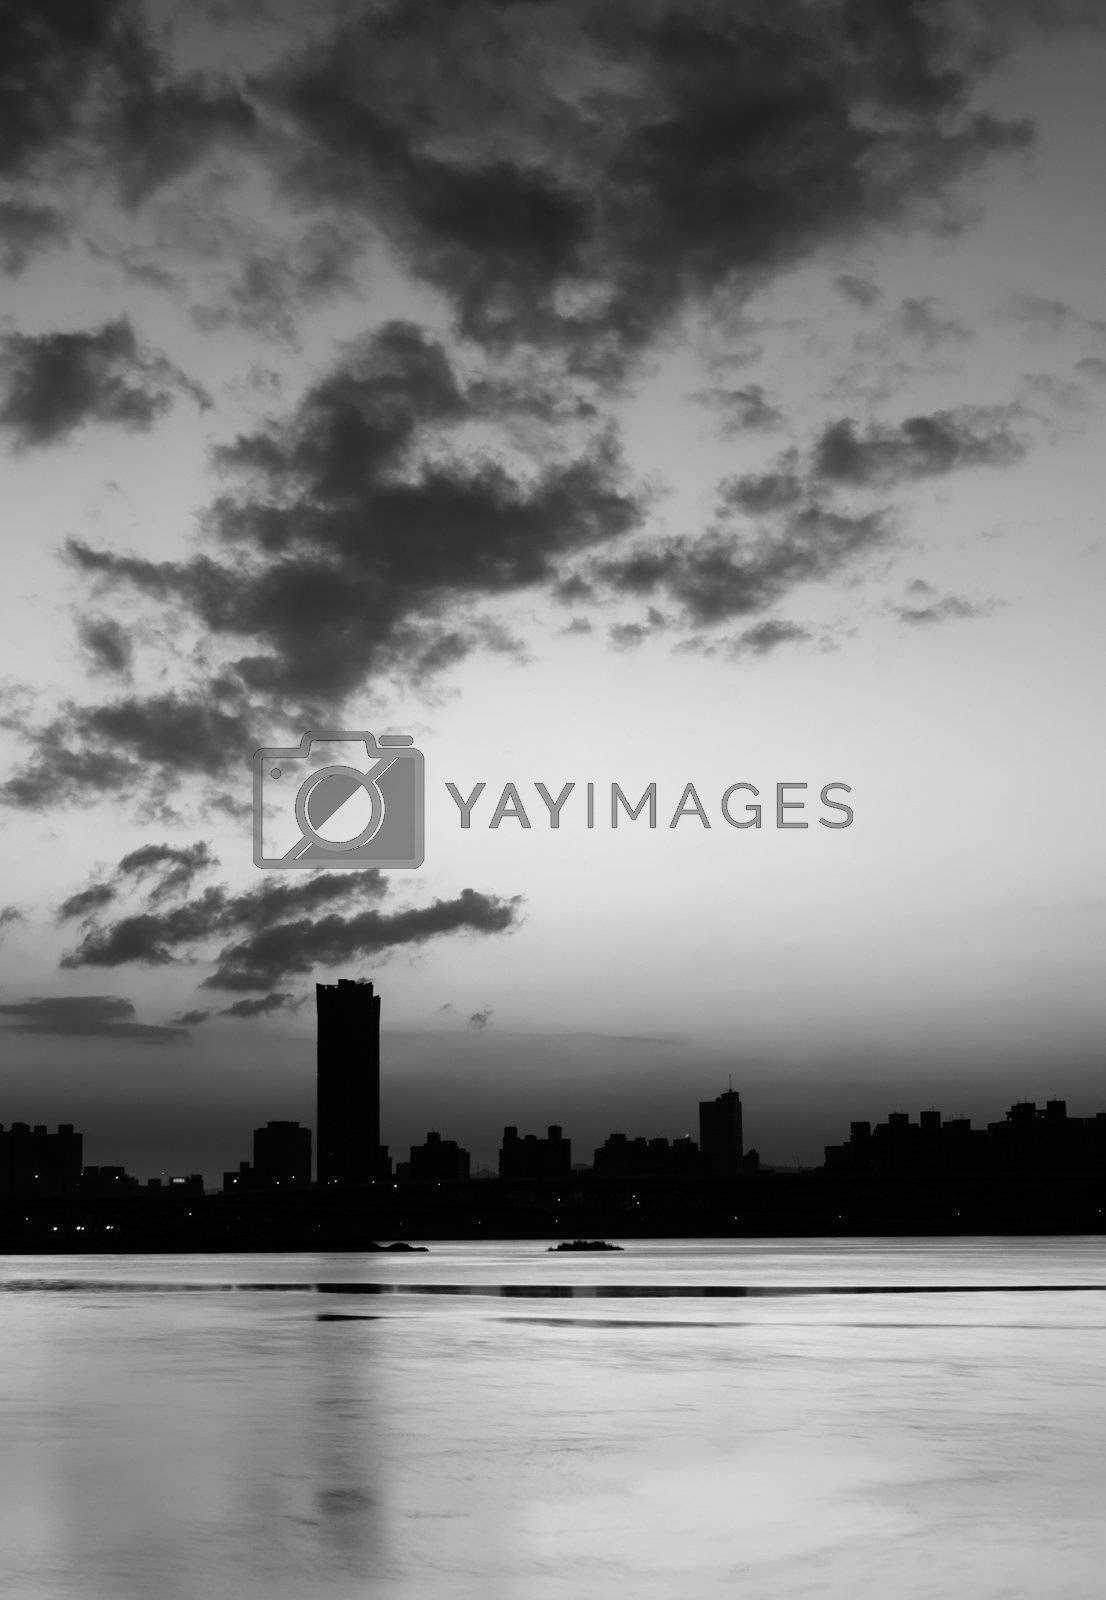 Royalty free image of Building silhouette by elwynn